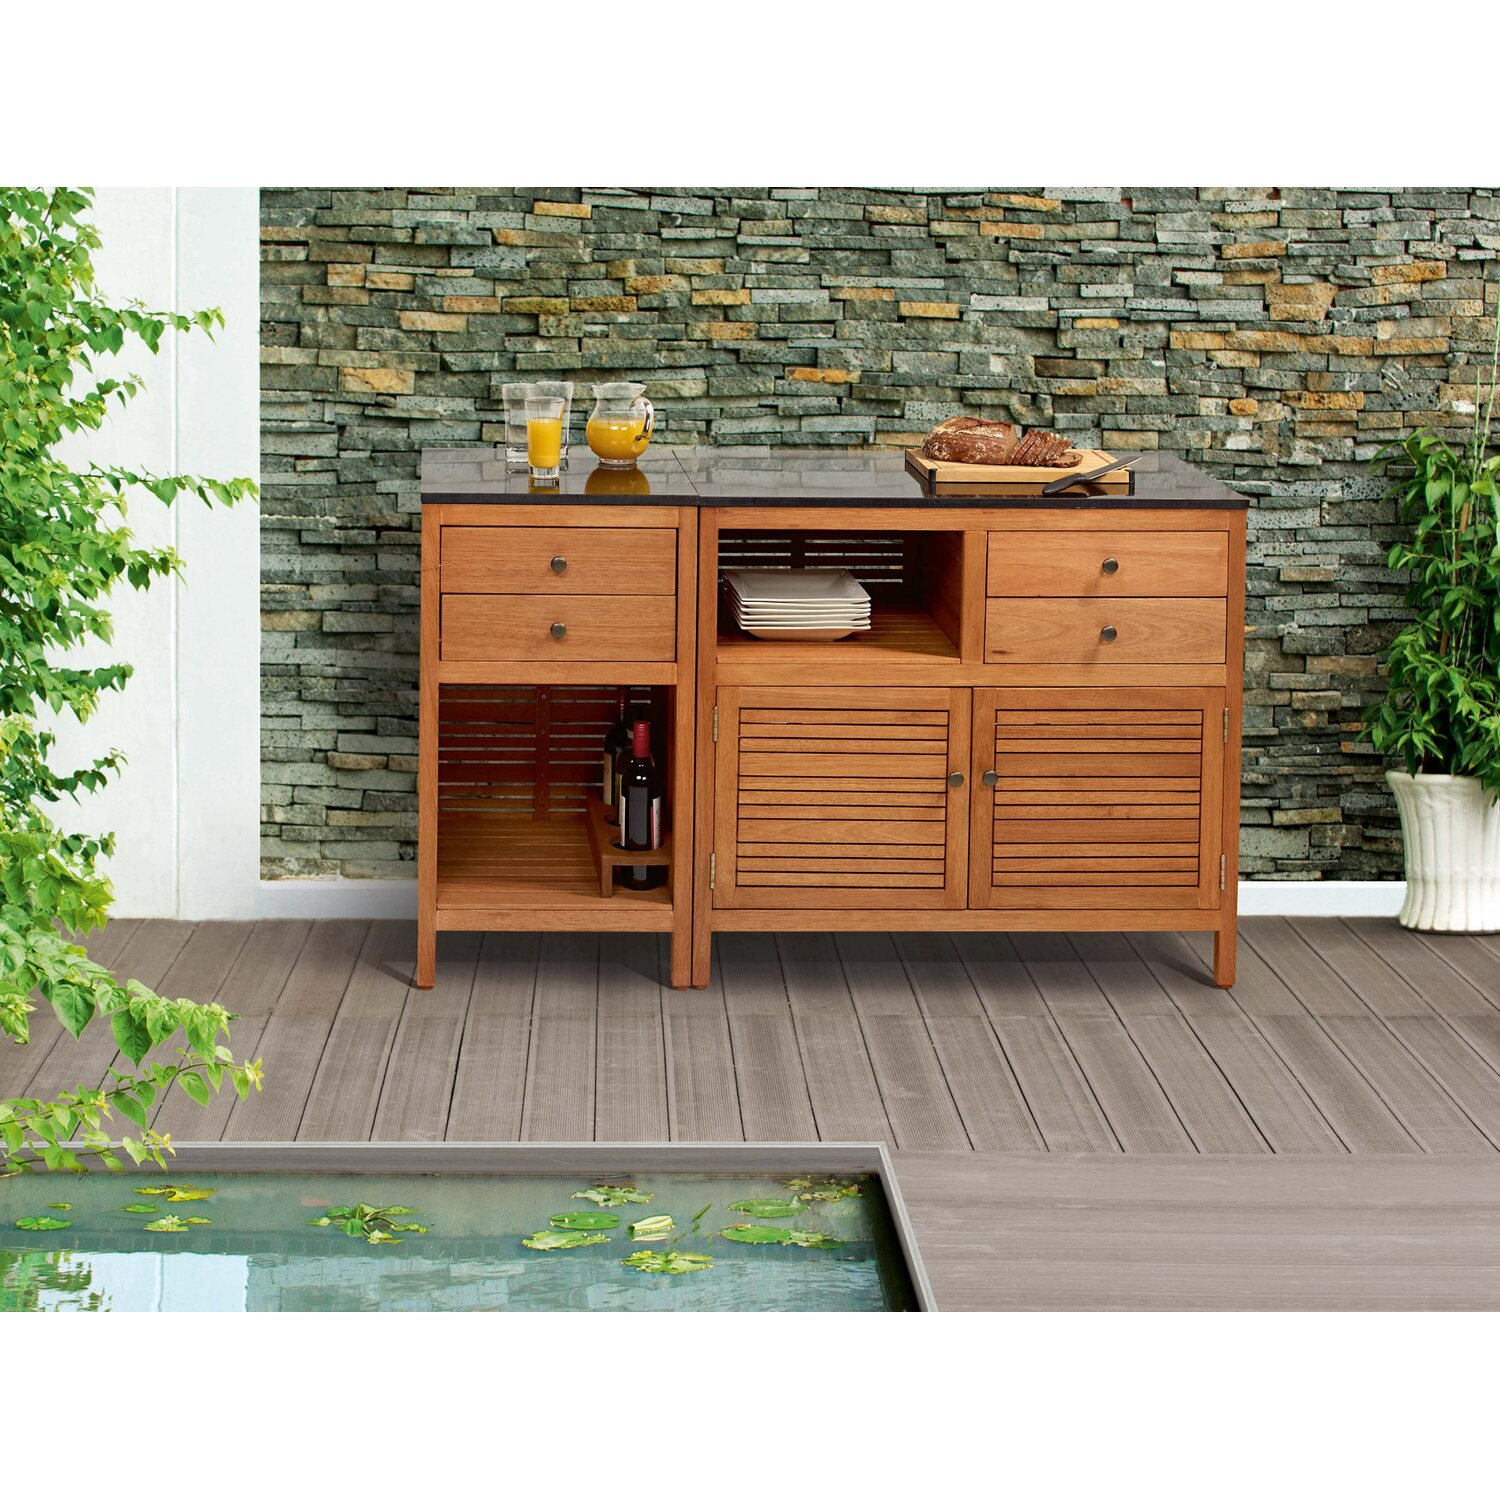 outdoor schrank terrasse pz69 hitoiro. Black Bedroom Furniture Sets. Home Design Ideas